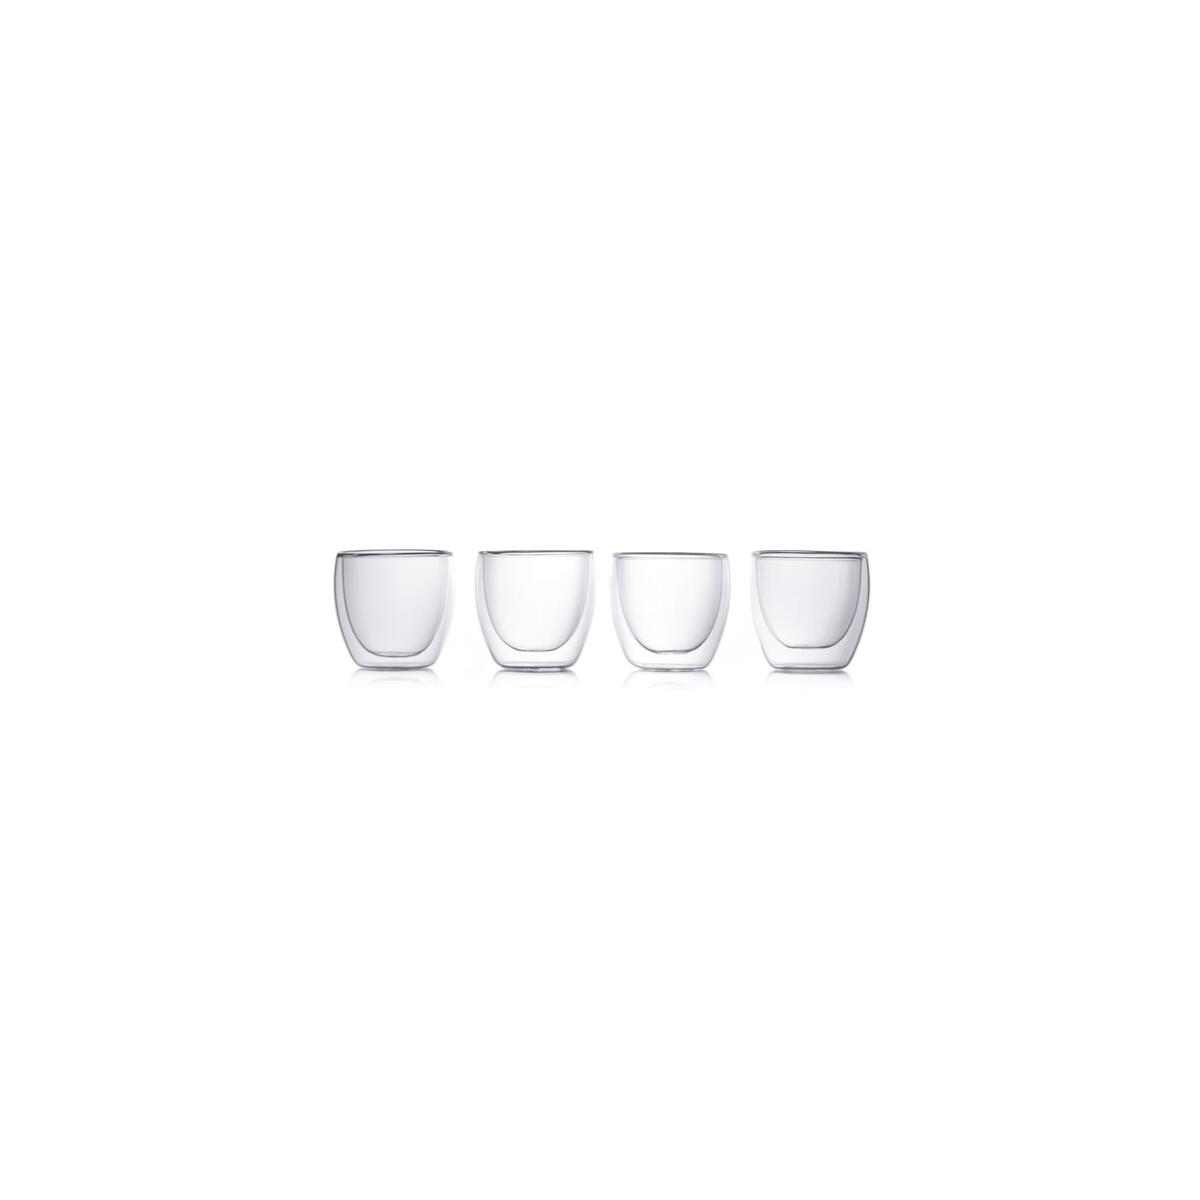 Eparé 2 oz Double Wall Espresso Cups (Set of 4)